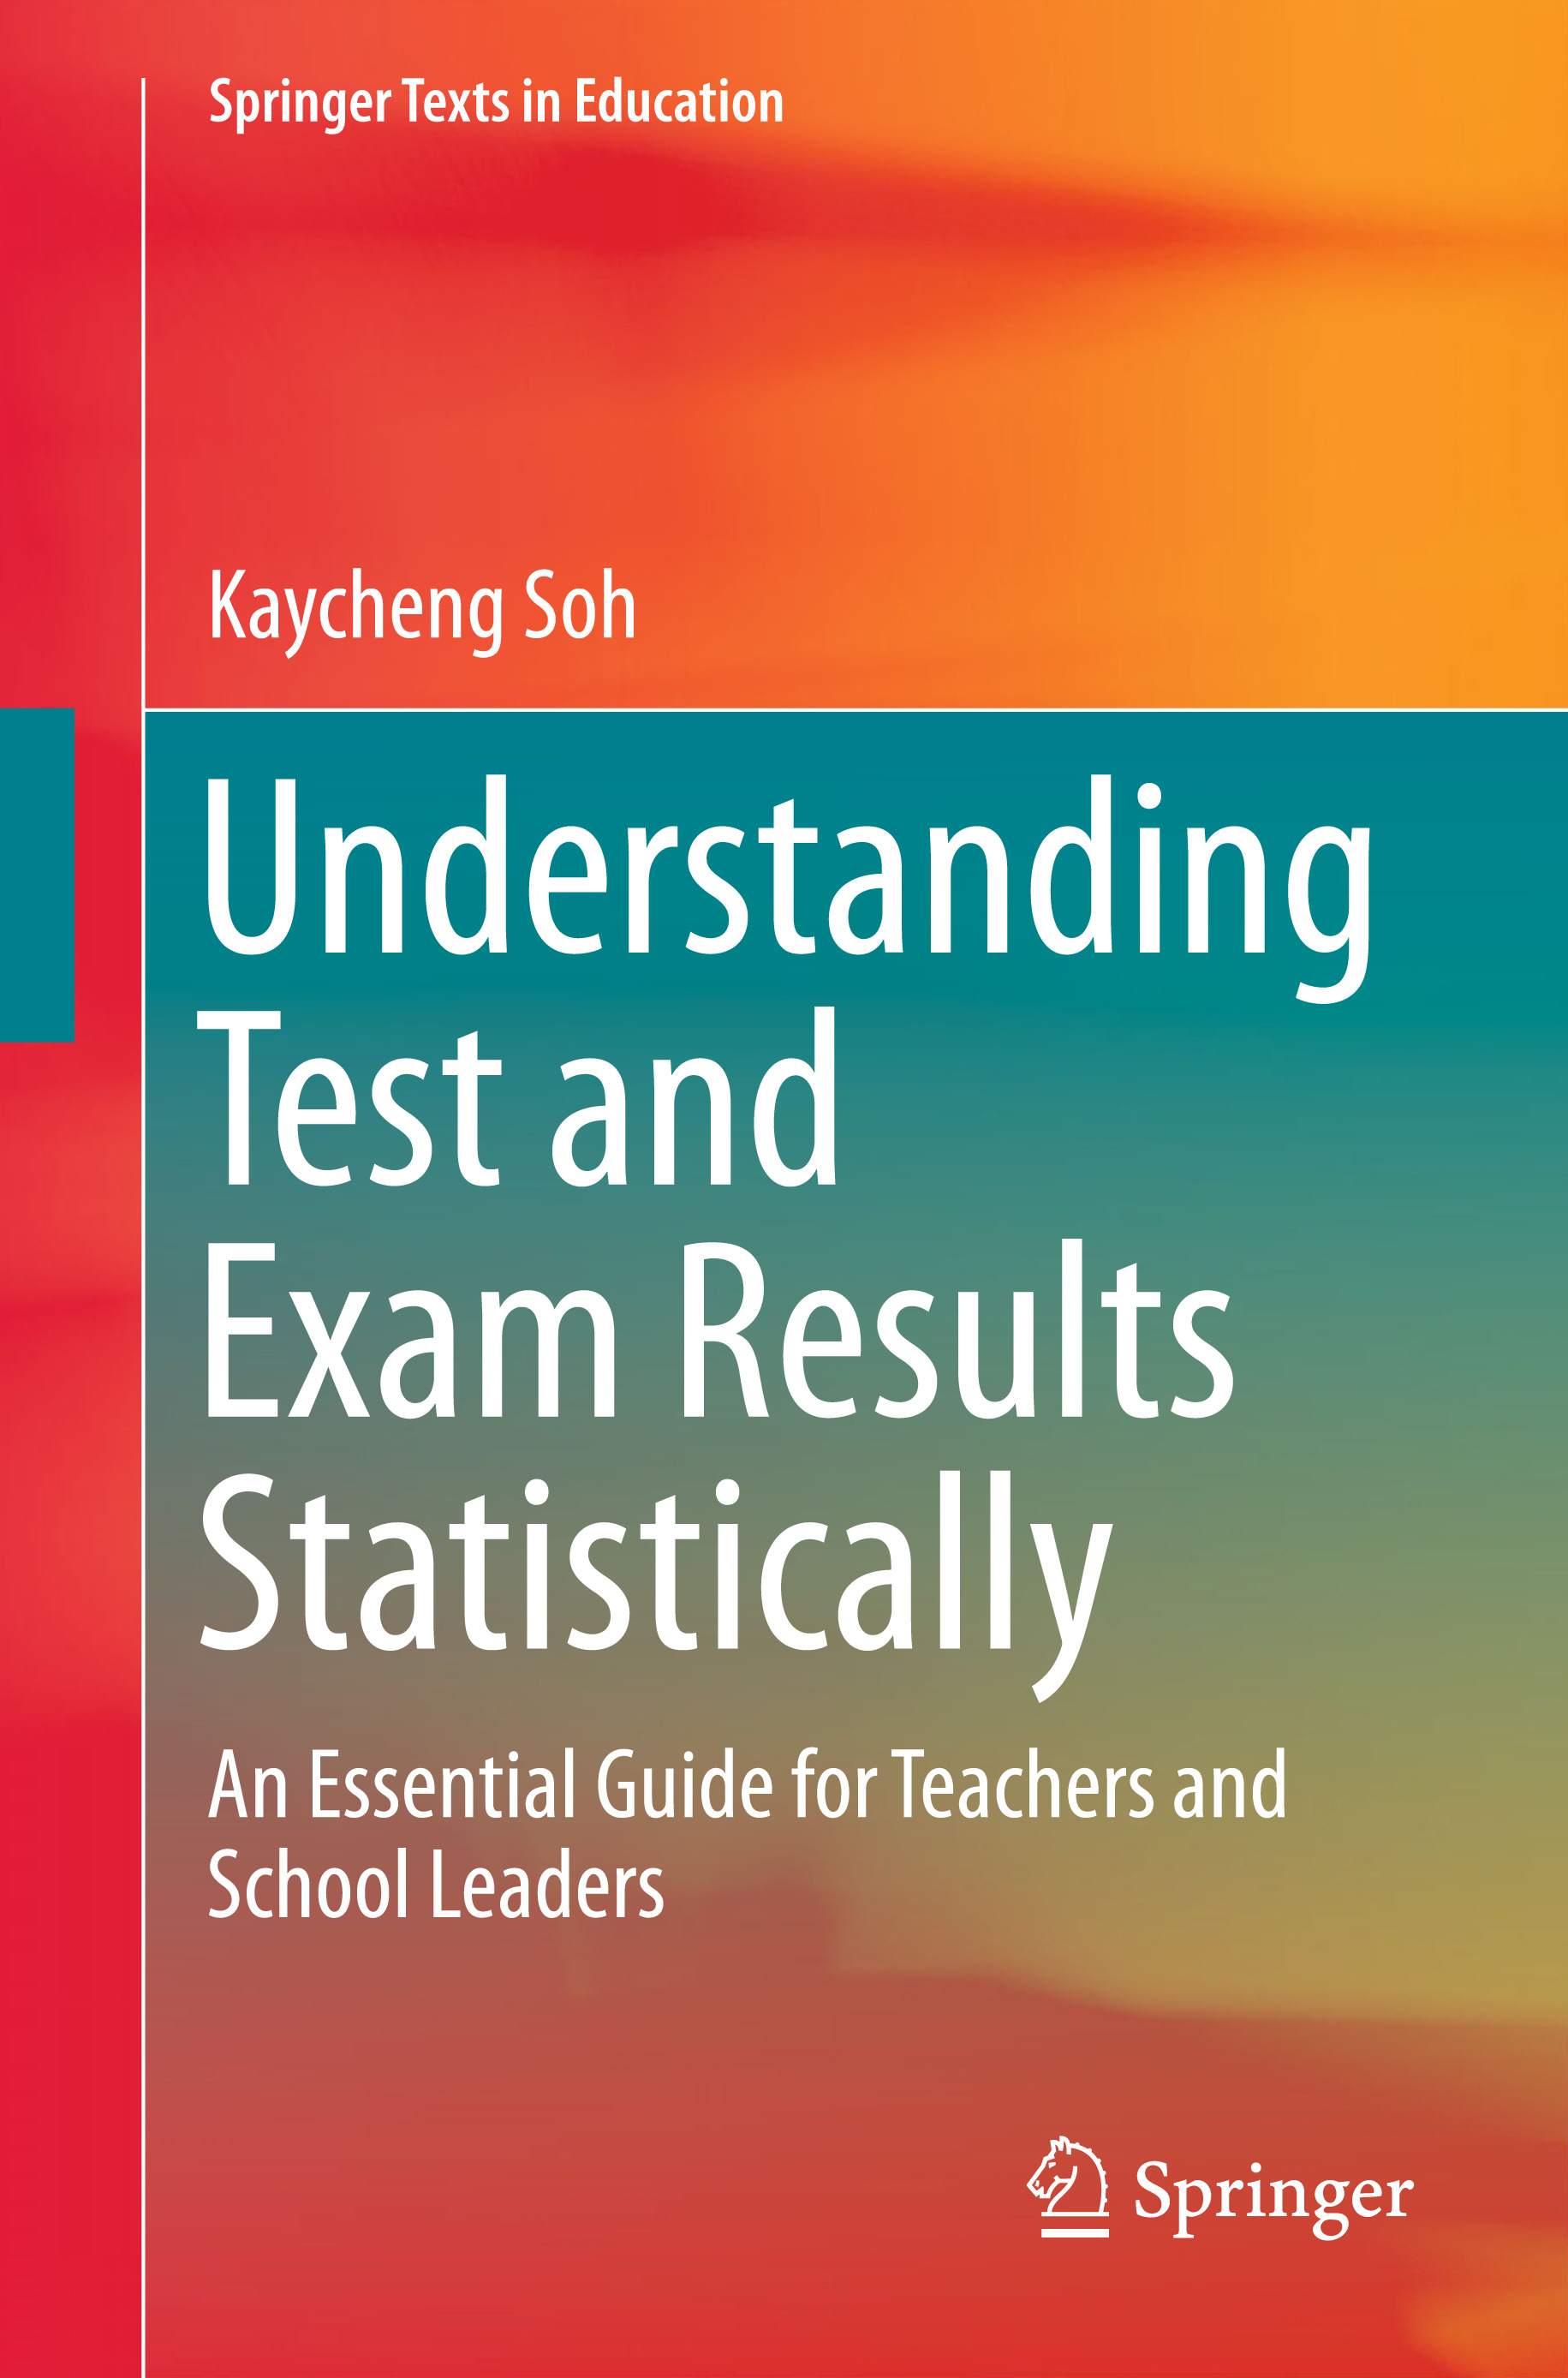 Soh, Kaycheng - Understanding Test and Exam Results Statistically, ebook